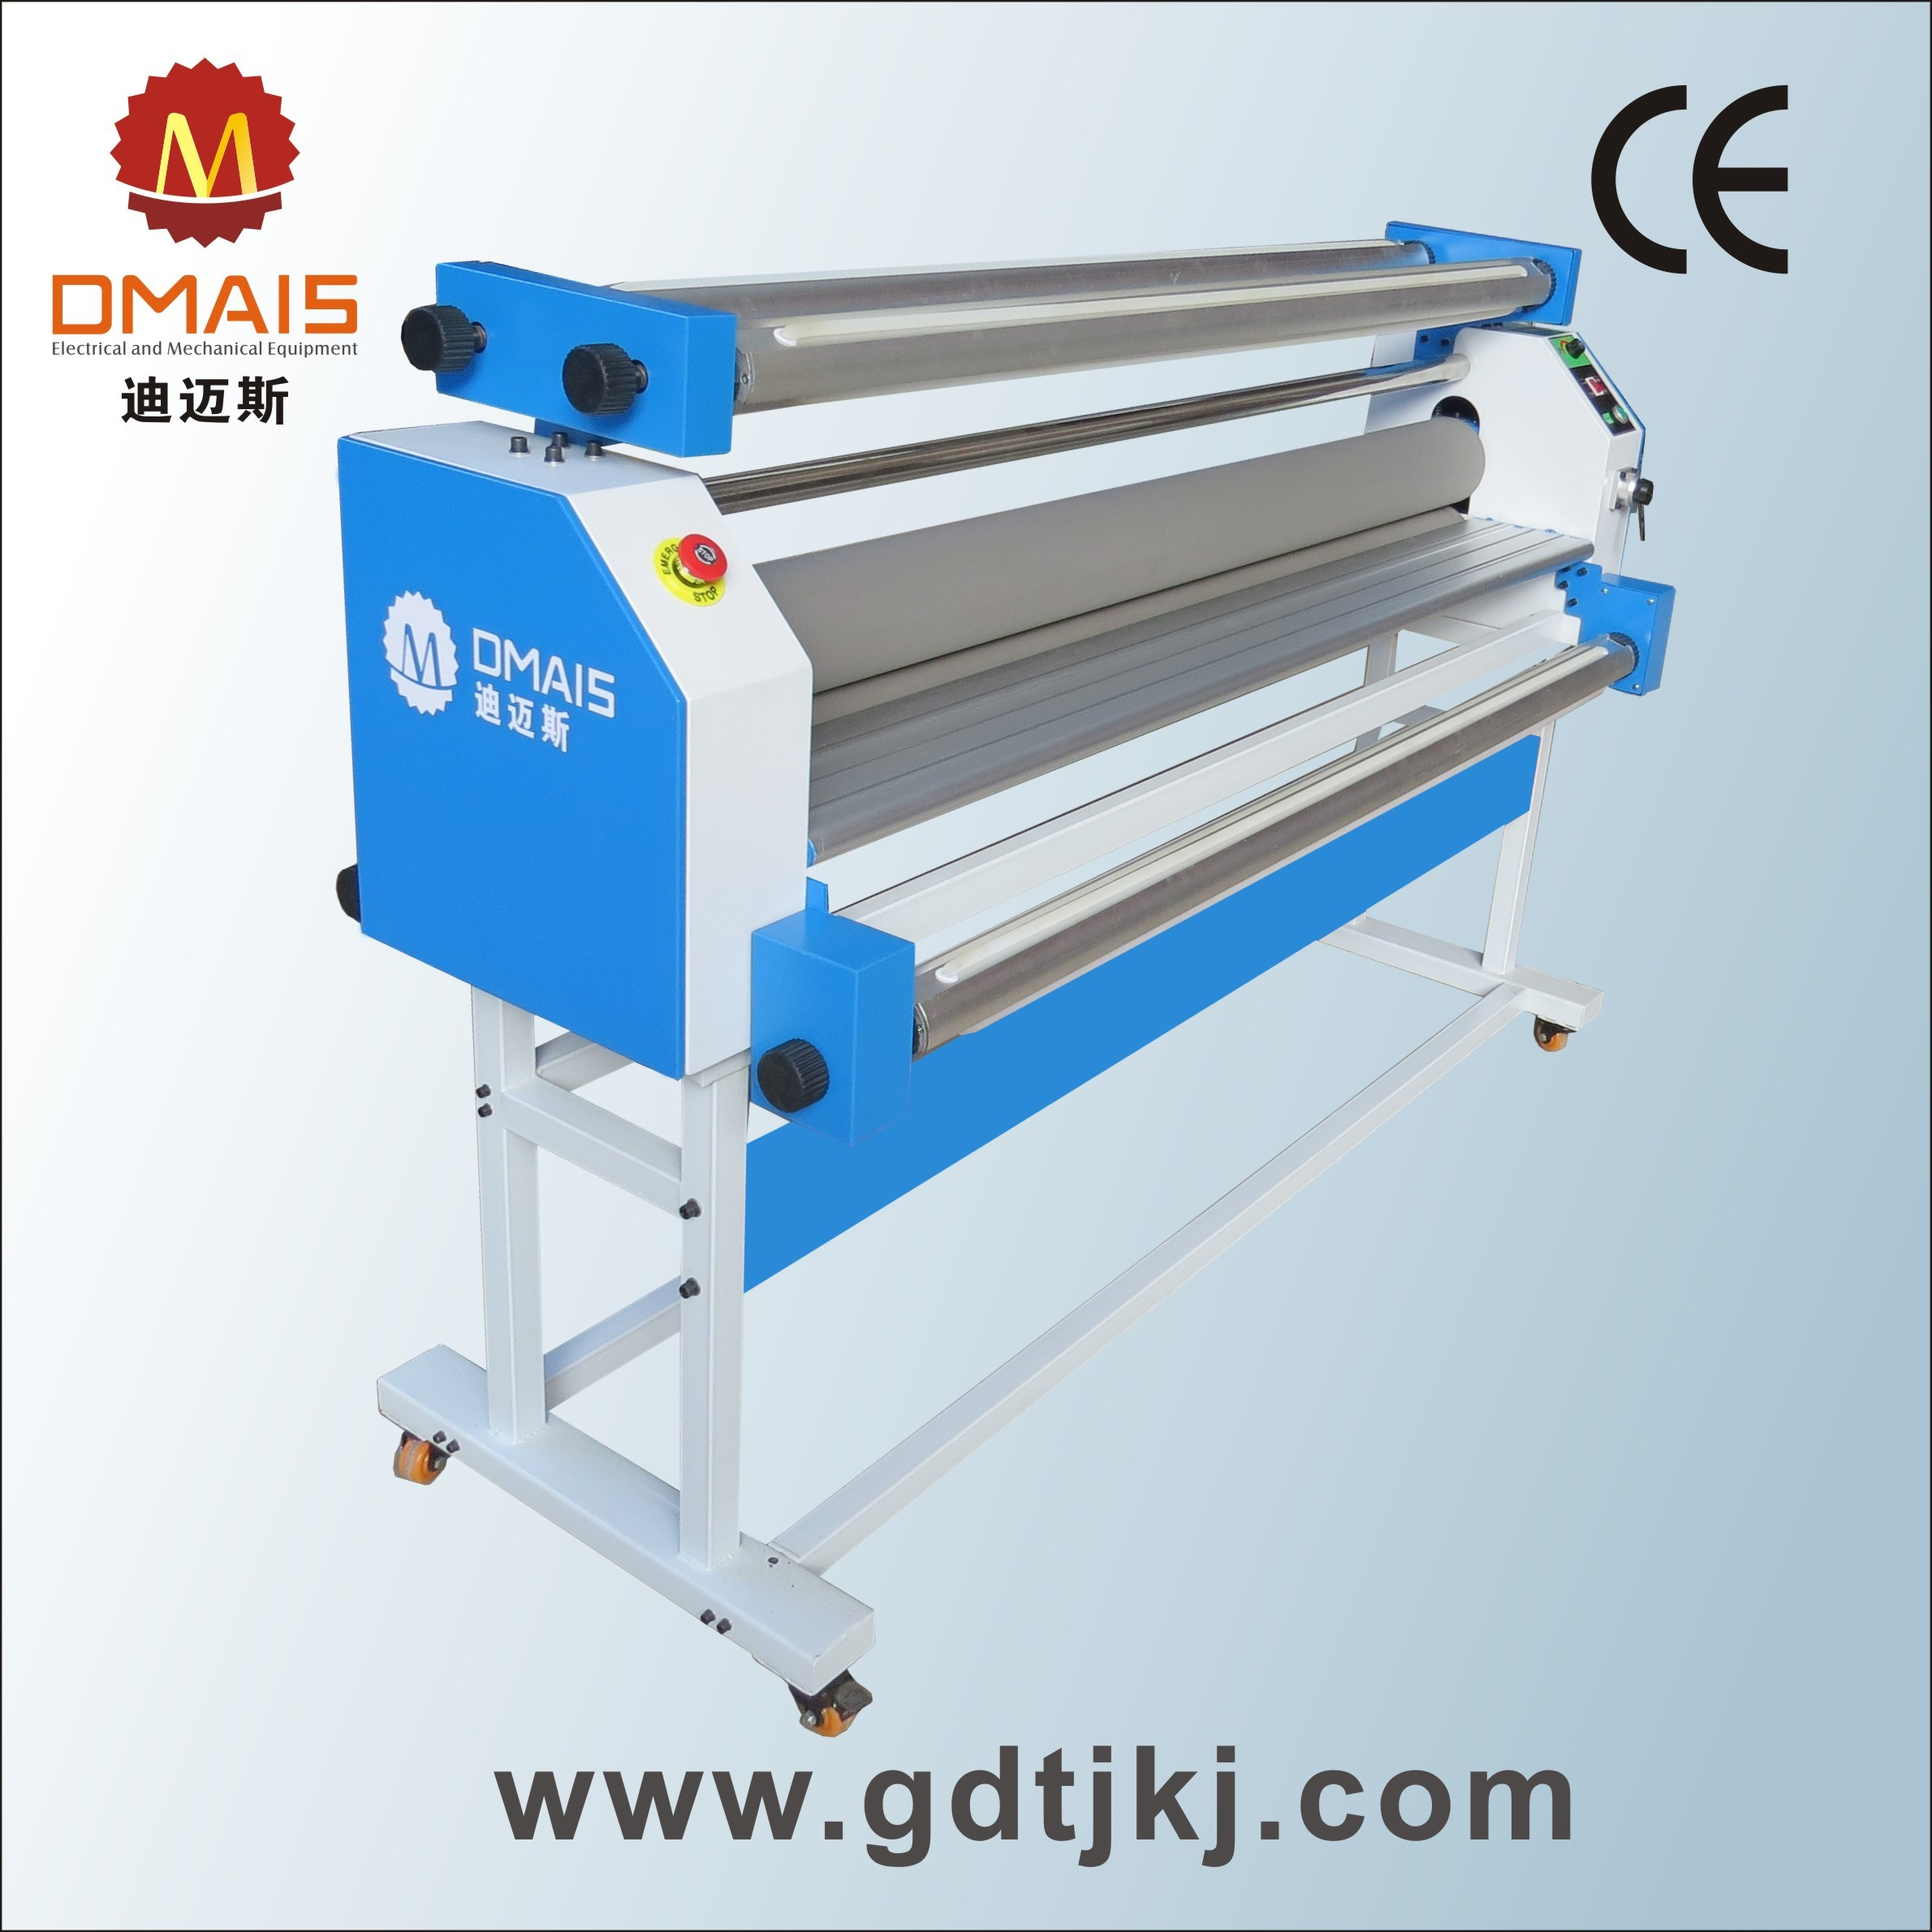 Dmais Full-Automatic Laminator-Hot and Cold Laminating Machine with Cutting